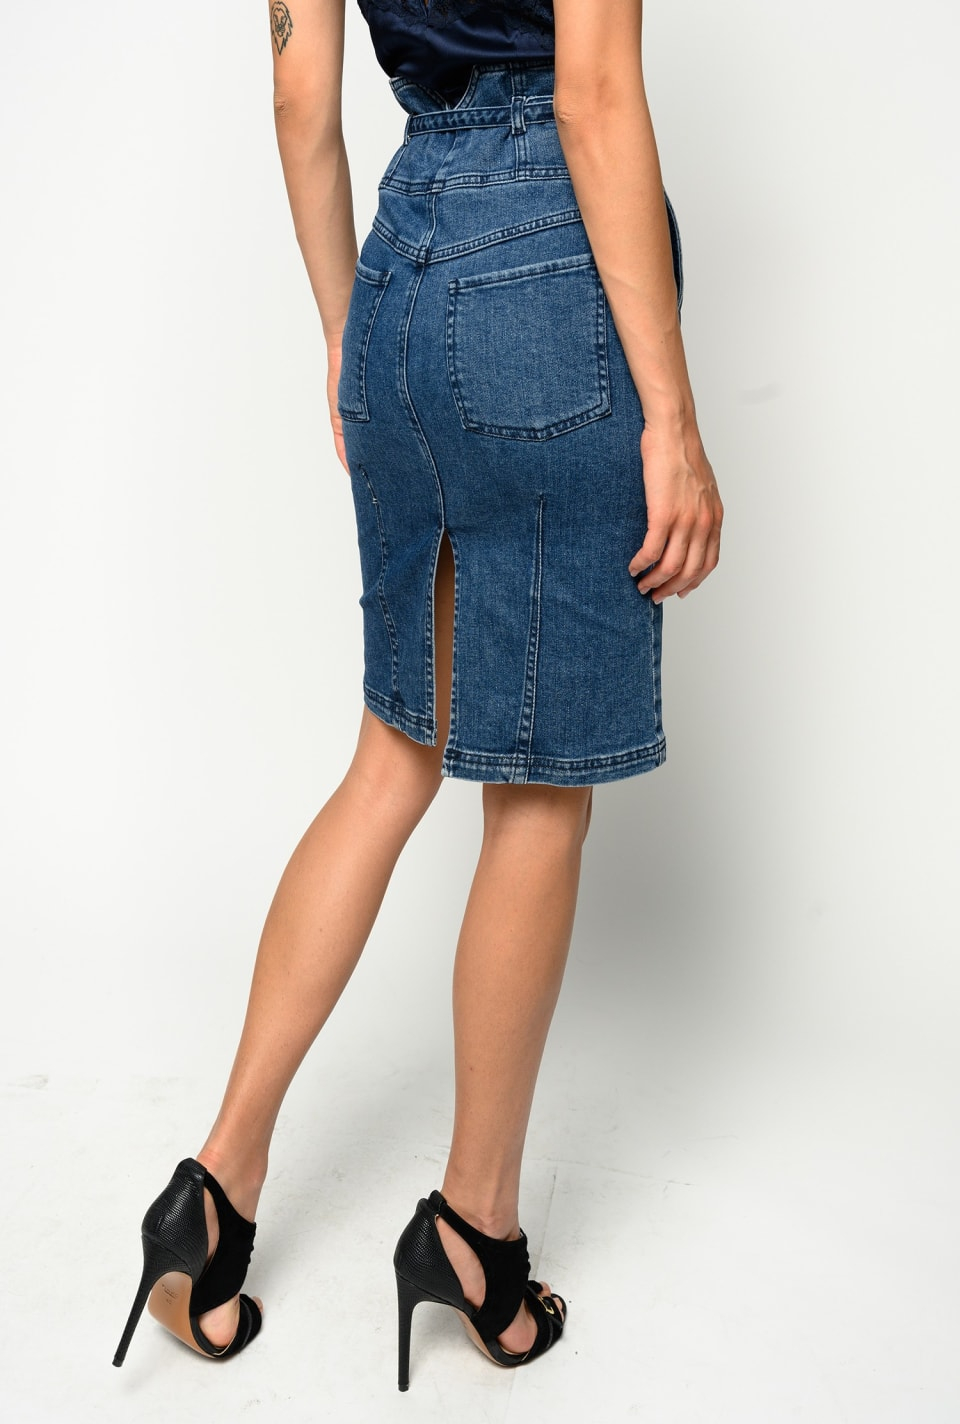 Gonna longuette bustier in comfort denim Pinko